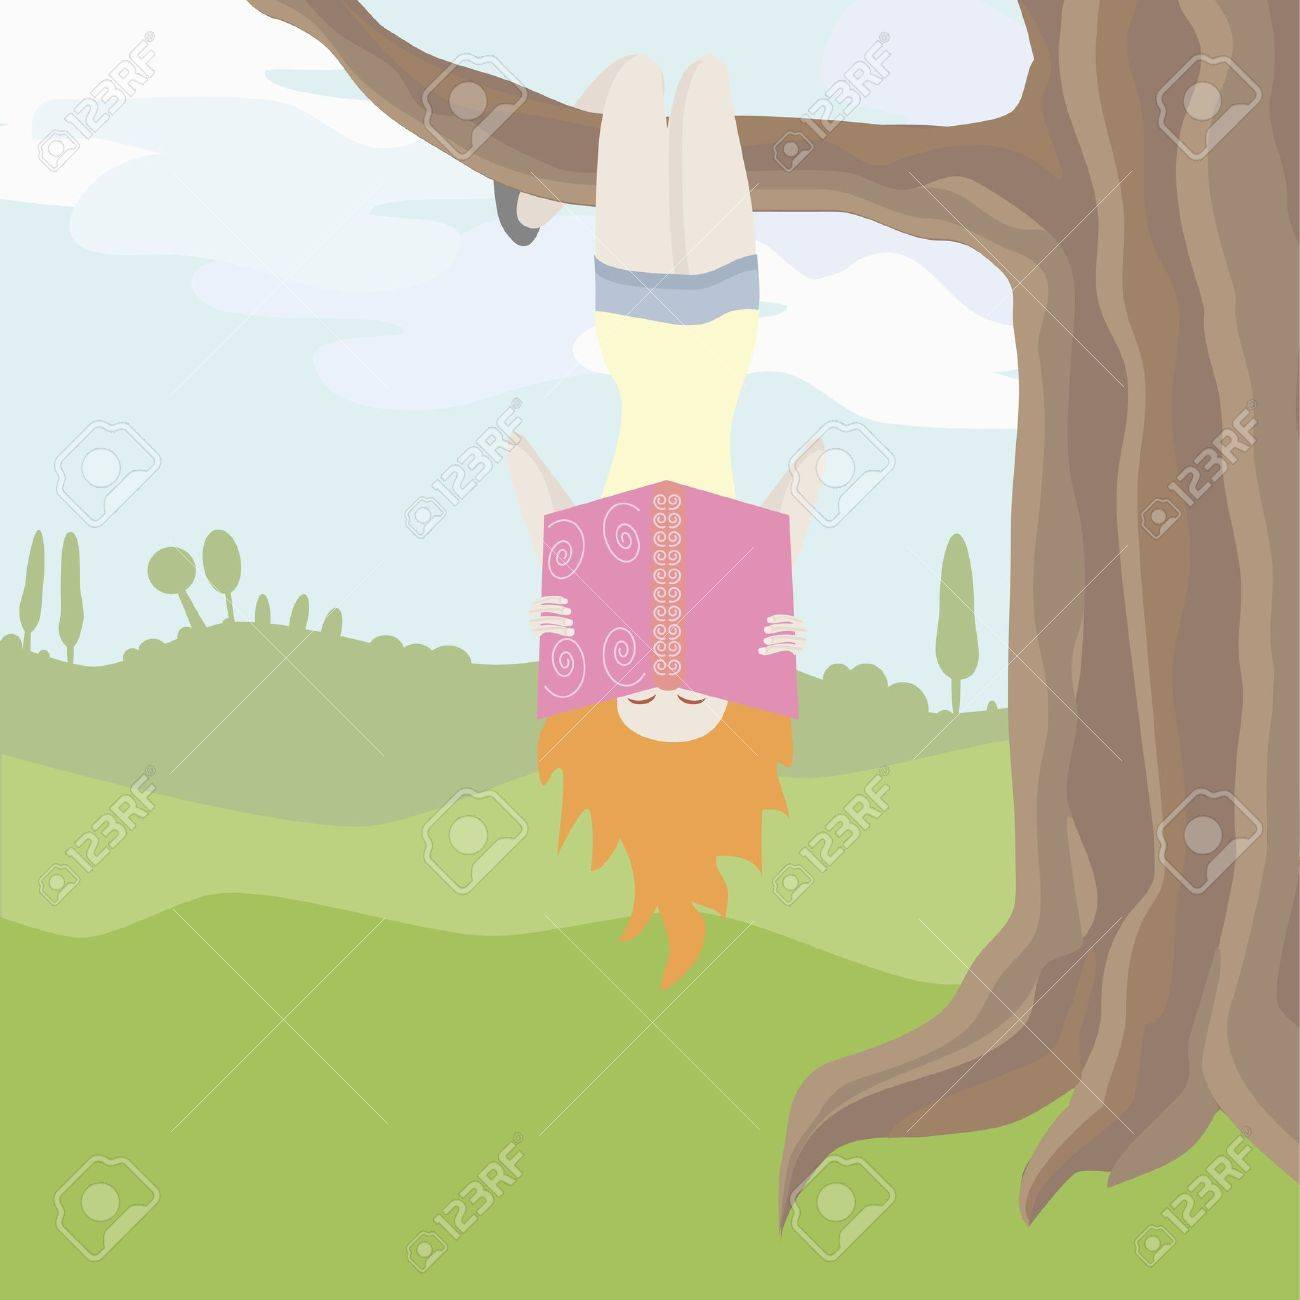 Hanging From a Tree Upside Down Hanging Upside Down an a